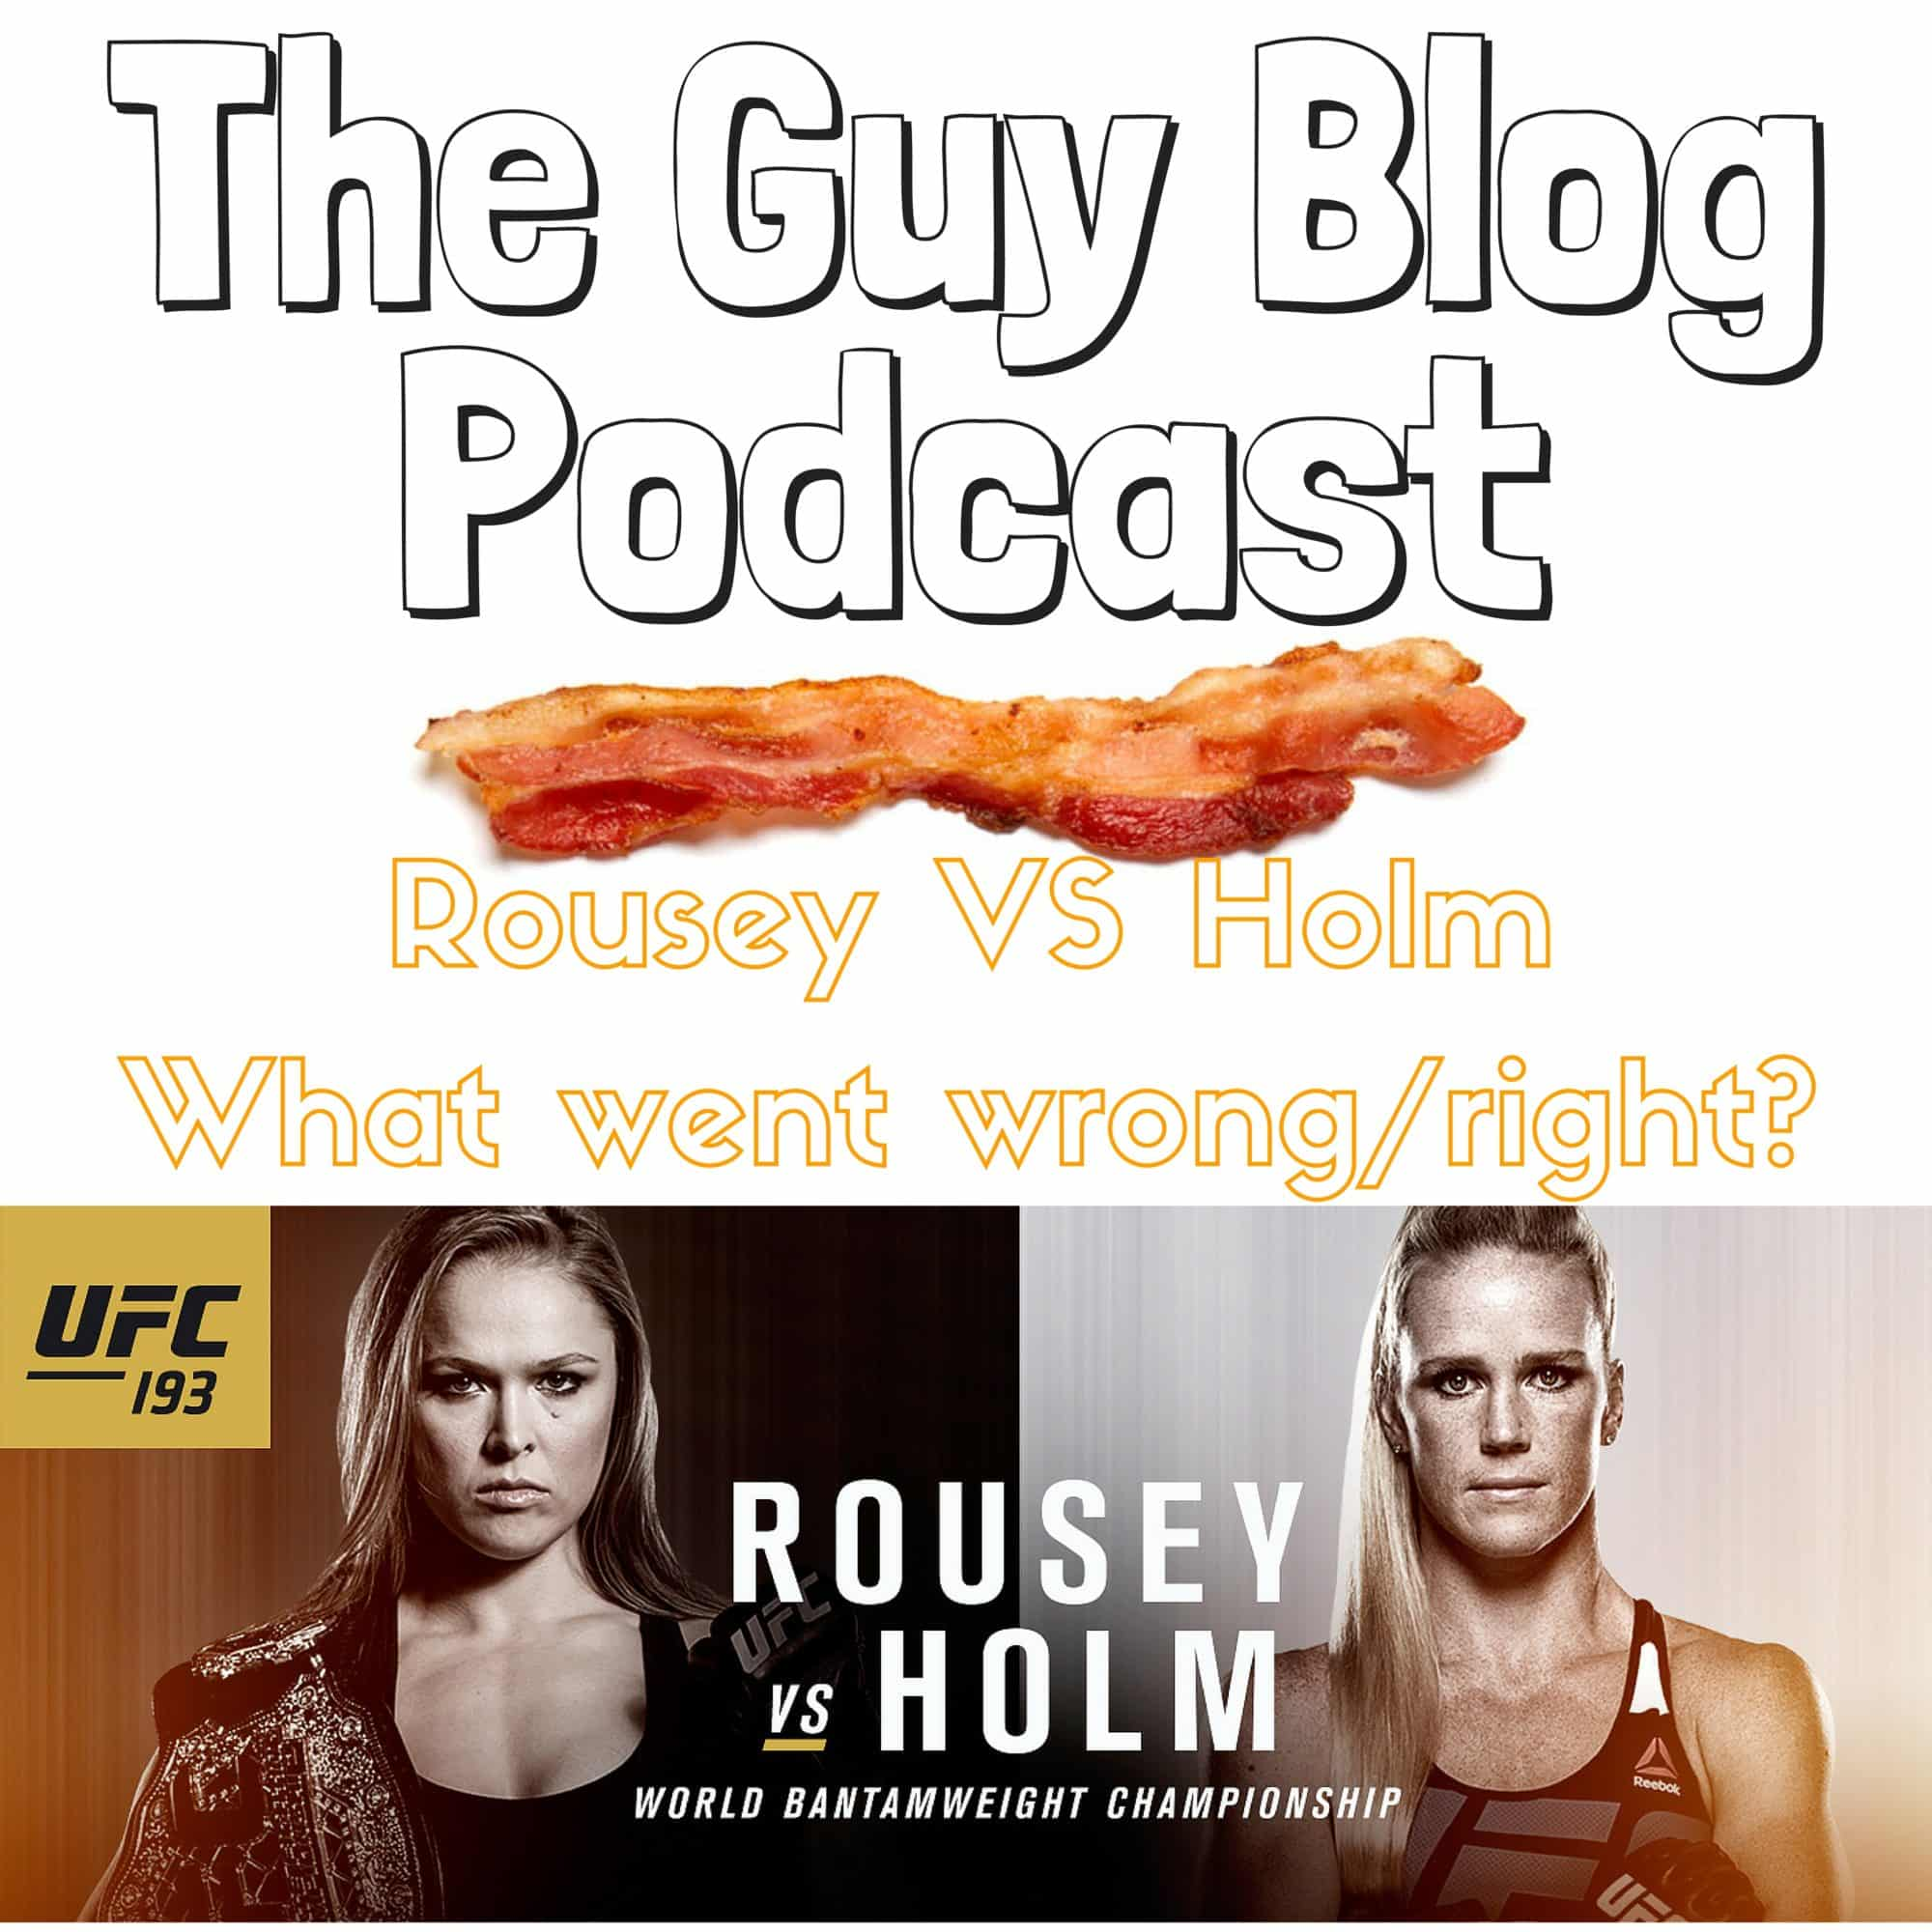 Why did Rousey lose?